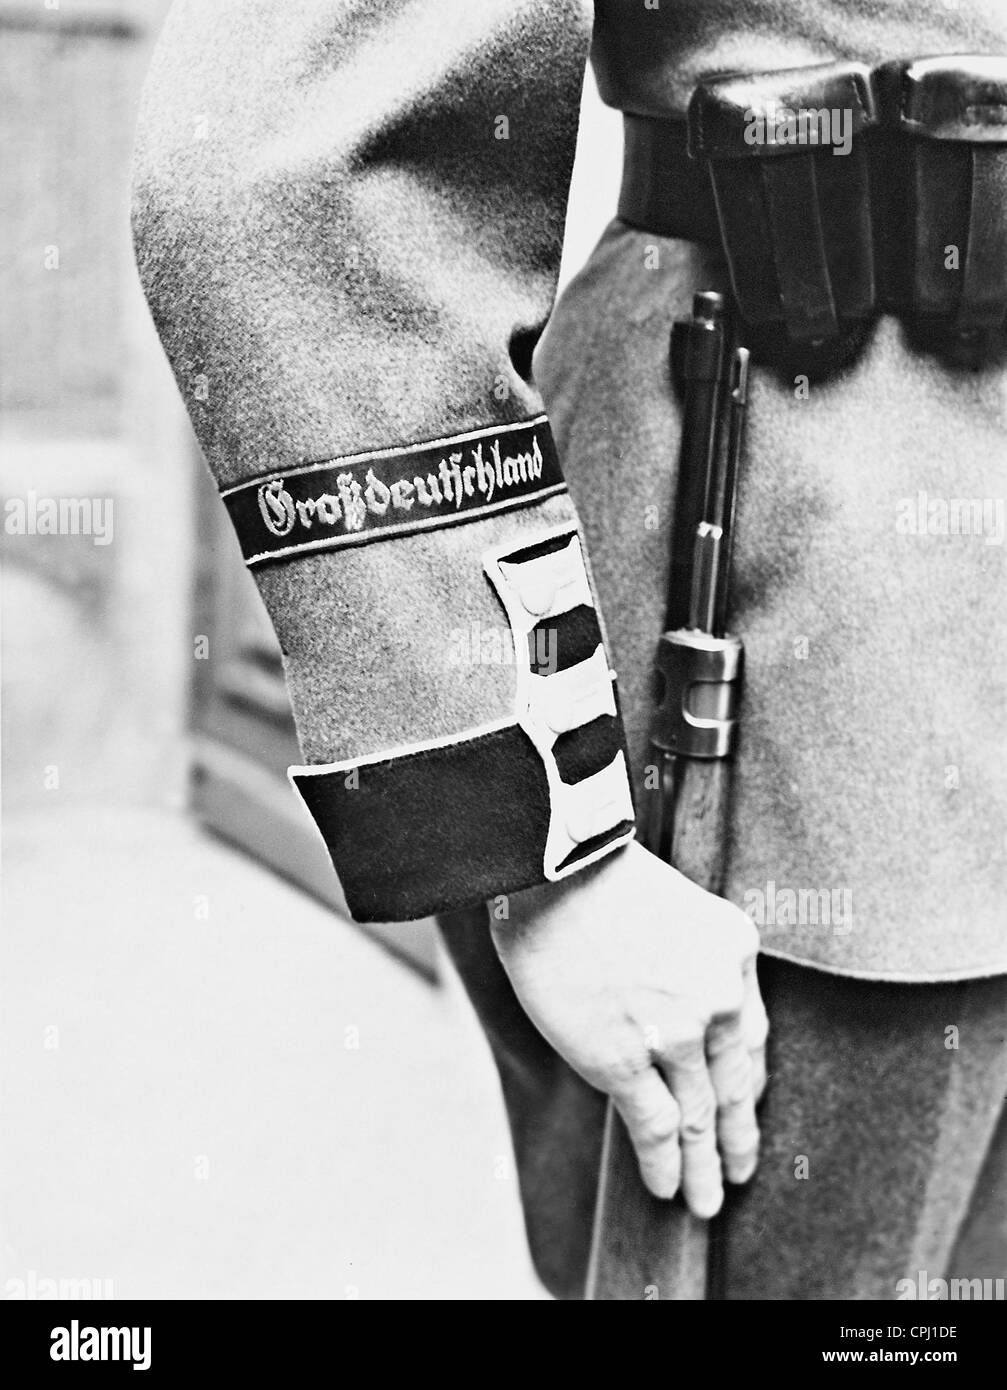 Sleeve band 'Greater Germany', 1939 - Stock Image